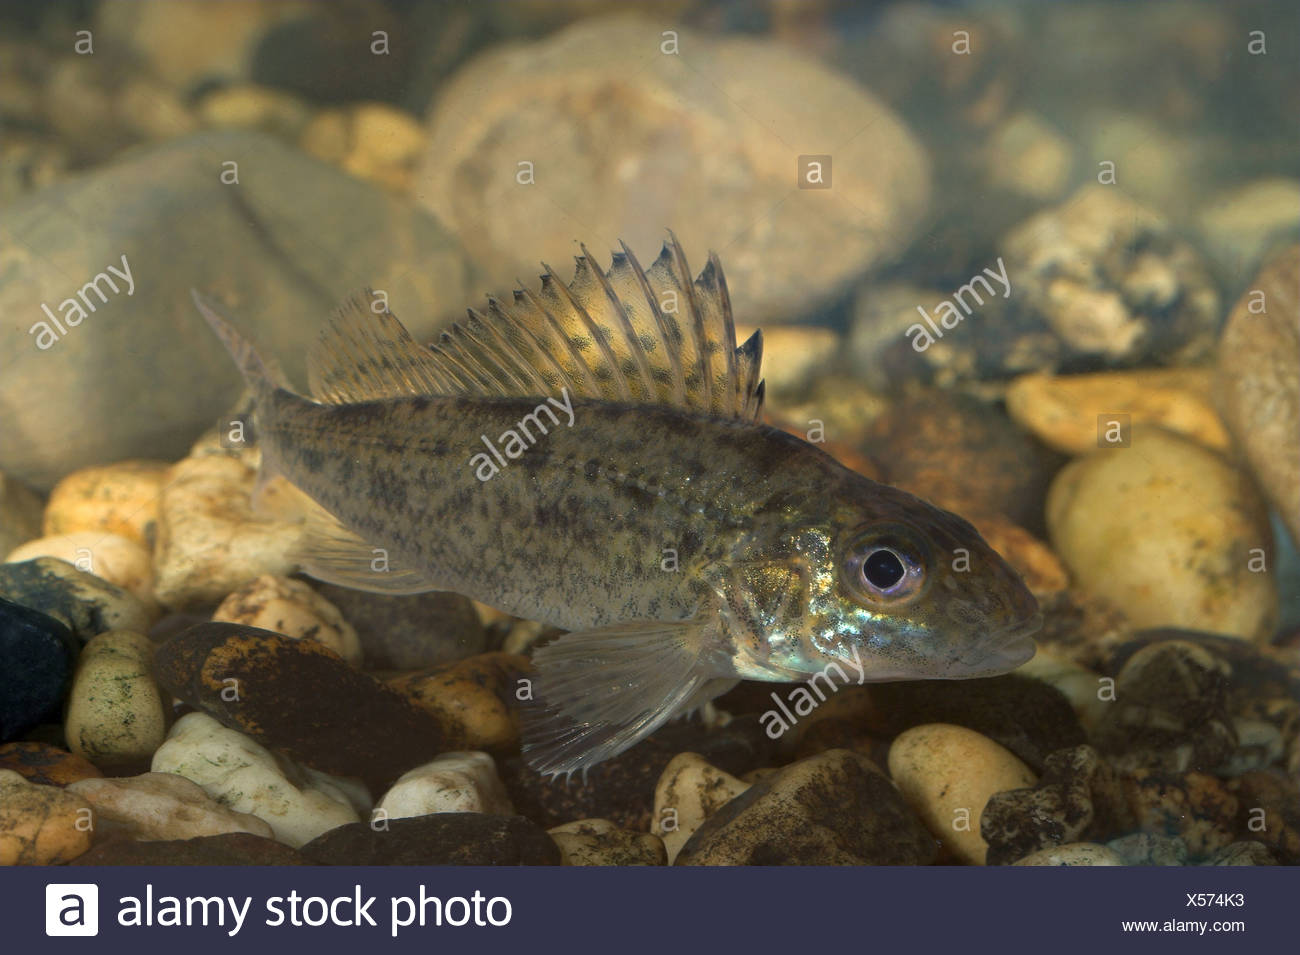 Ruffe, photographed in an aquarium - Stock Image